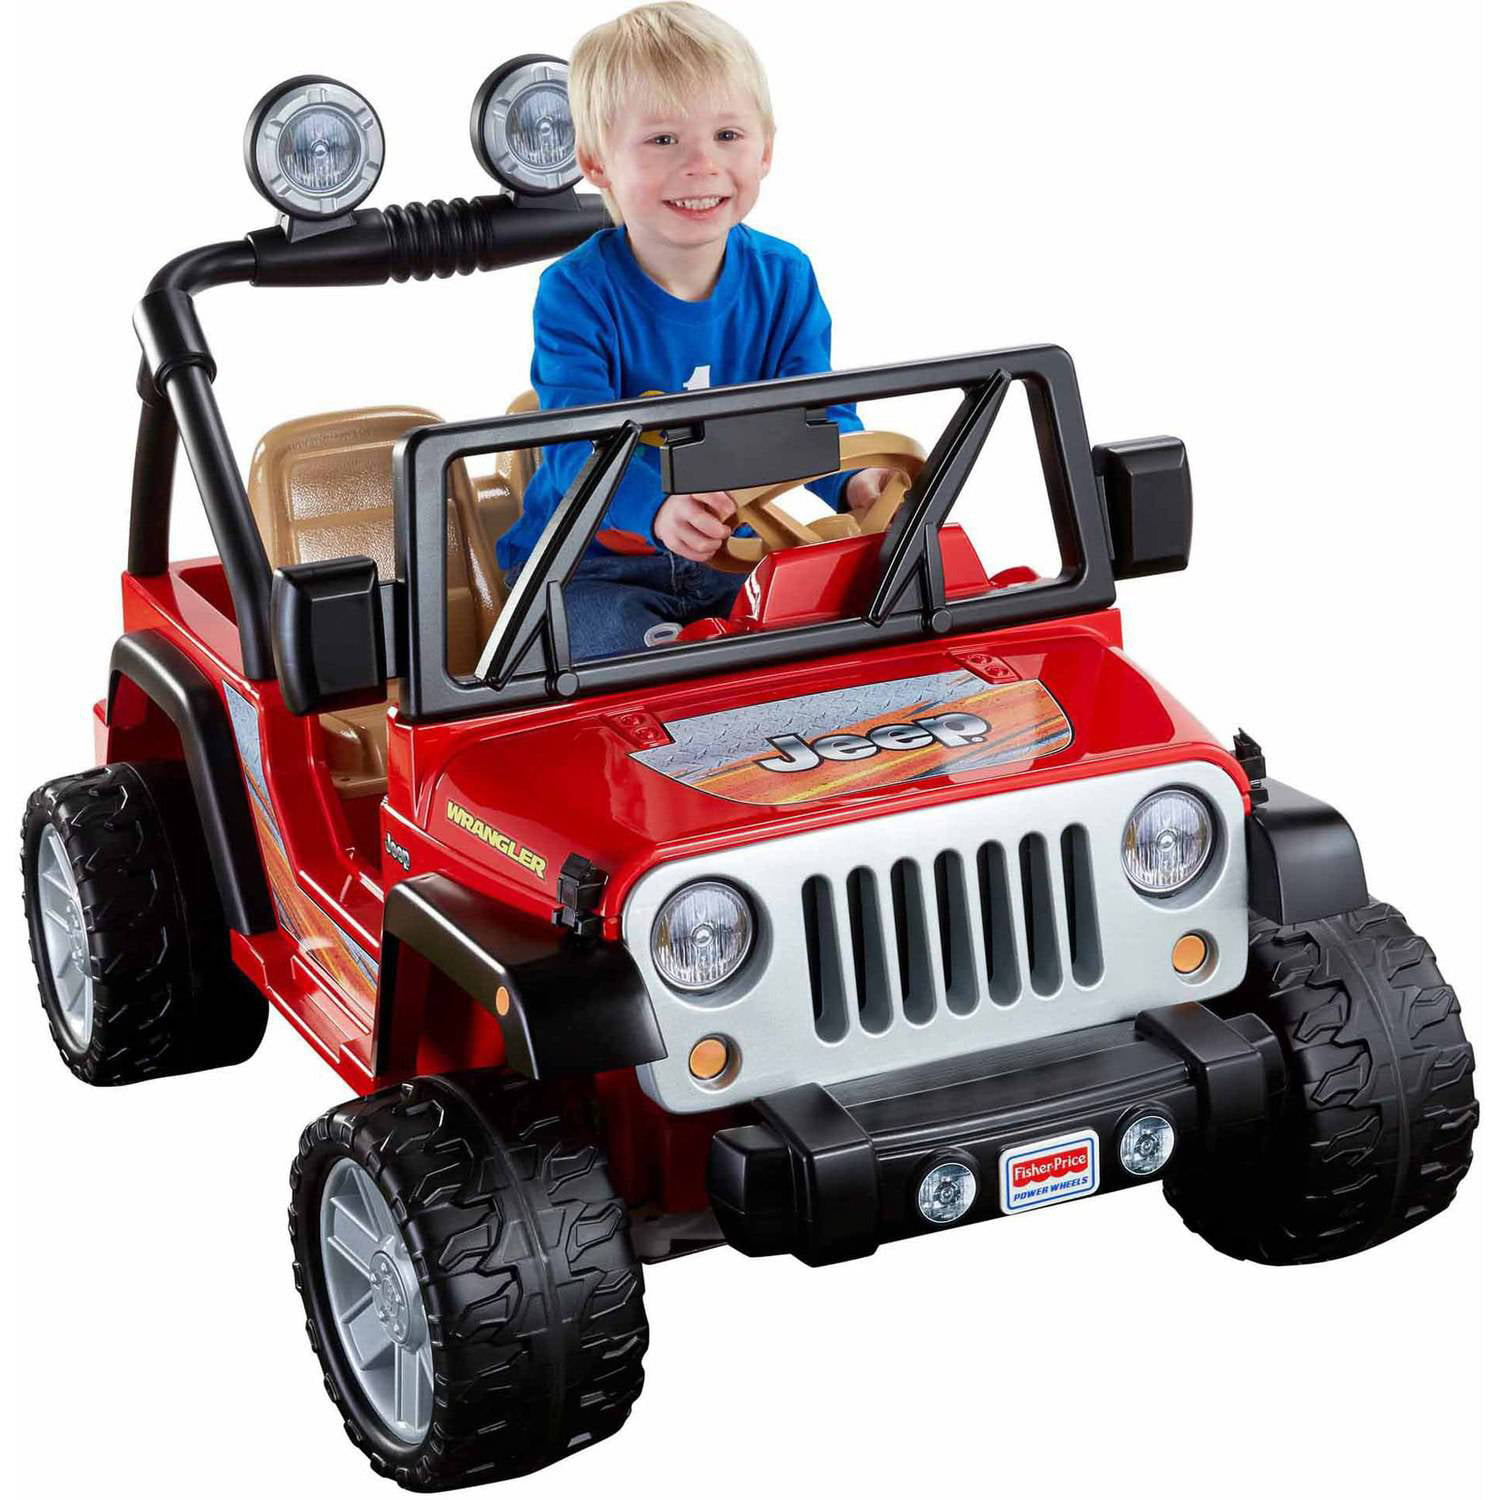 Power Wheels Jeep Wrangler 12-Volt Battery-Powered Ride-On, Red -  Walmart.com